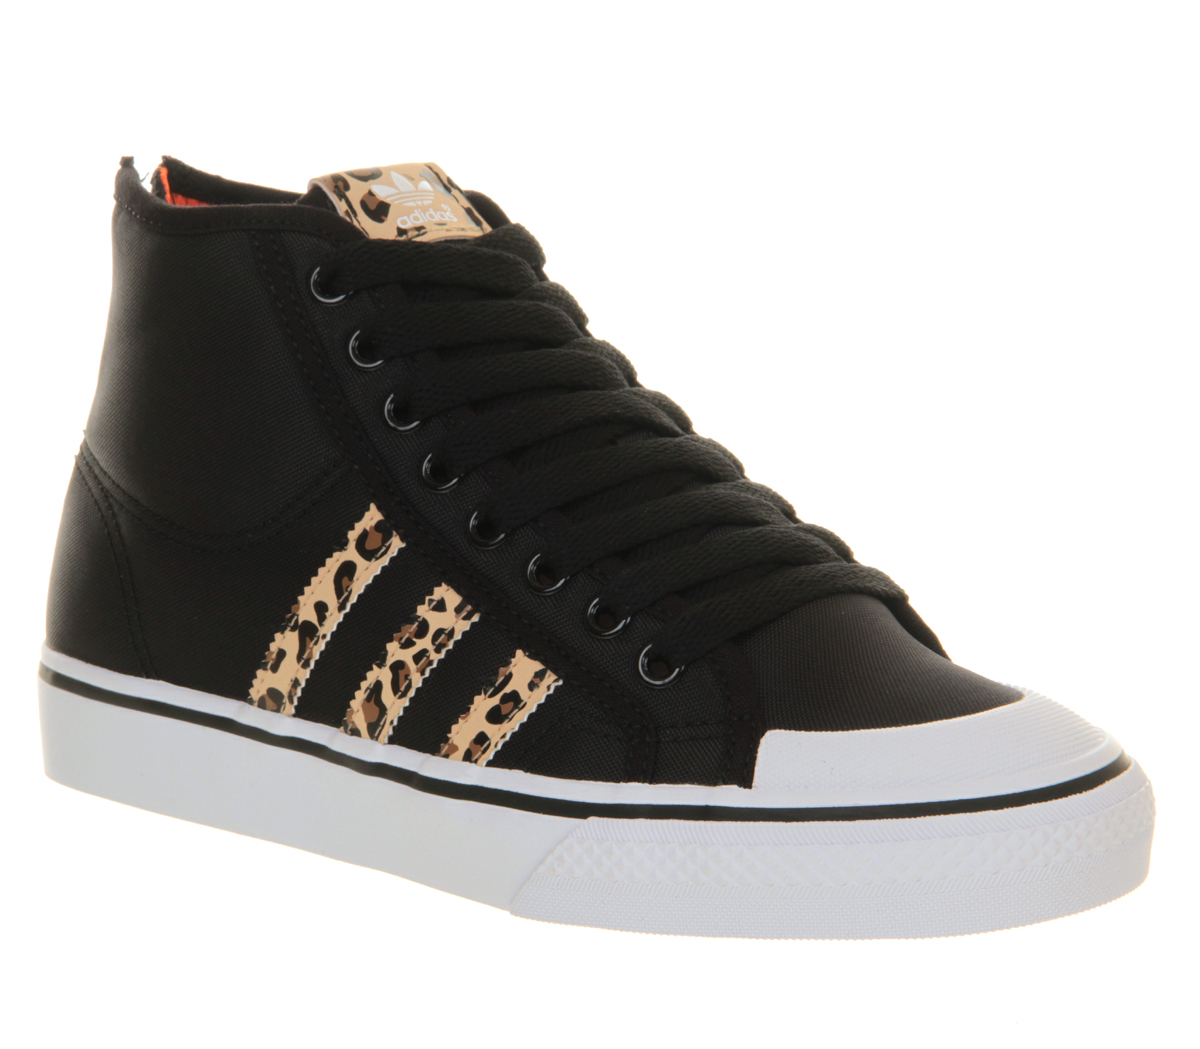 adidas Nizza Hi Heel Zip in Black for Men